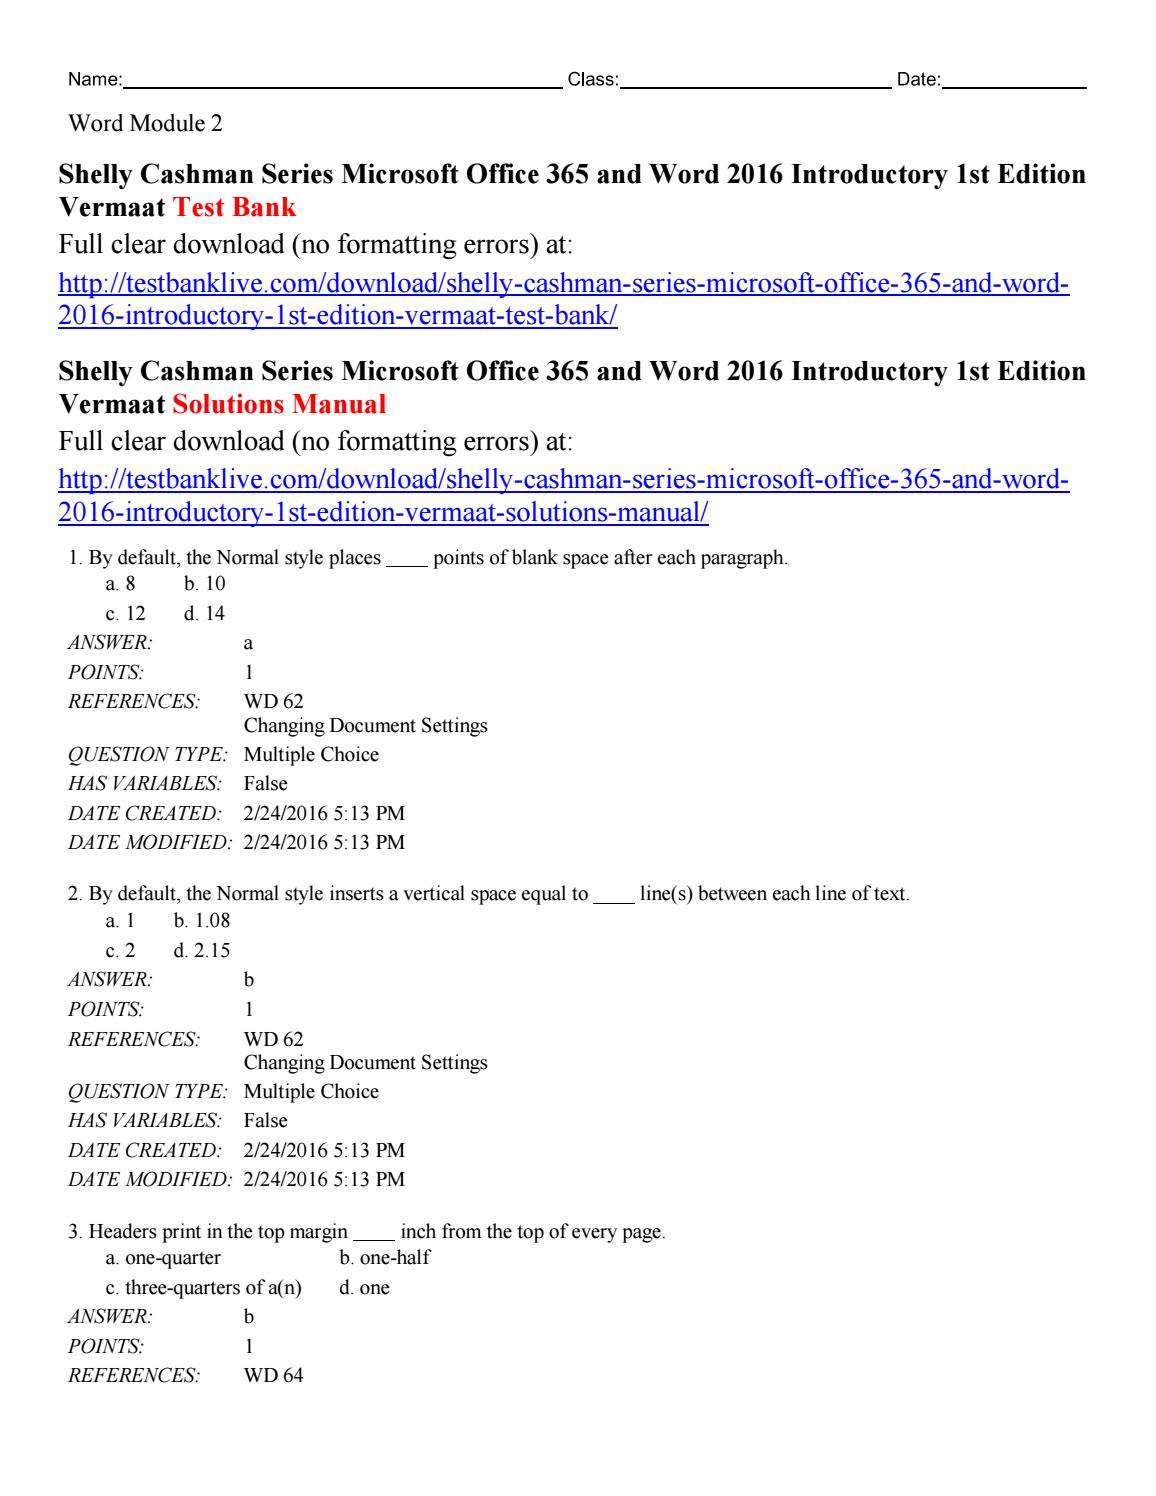 Shelly cashman series microsoft office 365 and word 2016